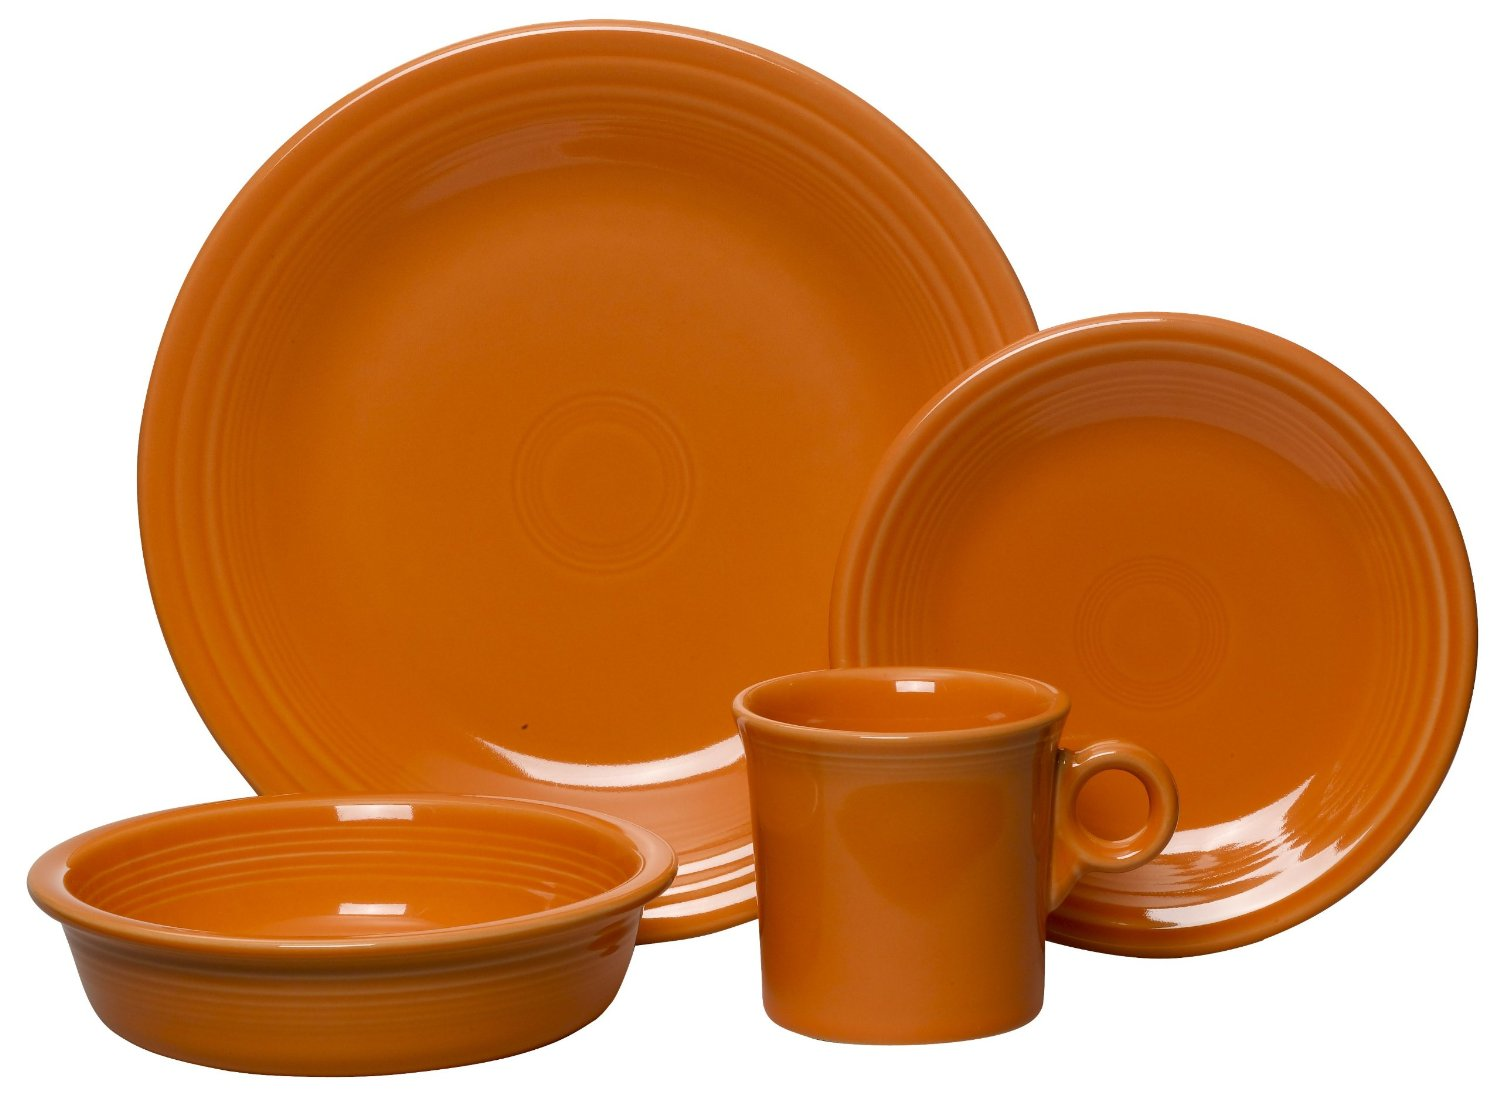 Awesome Collections Of Fiestaware For Dinnerware Ideas: Chic Fiestaware 4 Piece Dinnerware Place Setting In Orange For Dinnerware Ideas